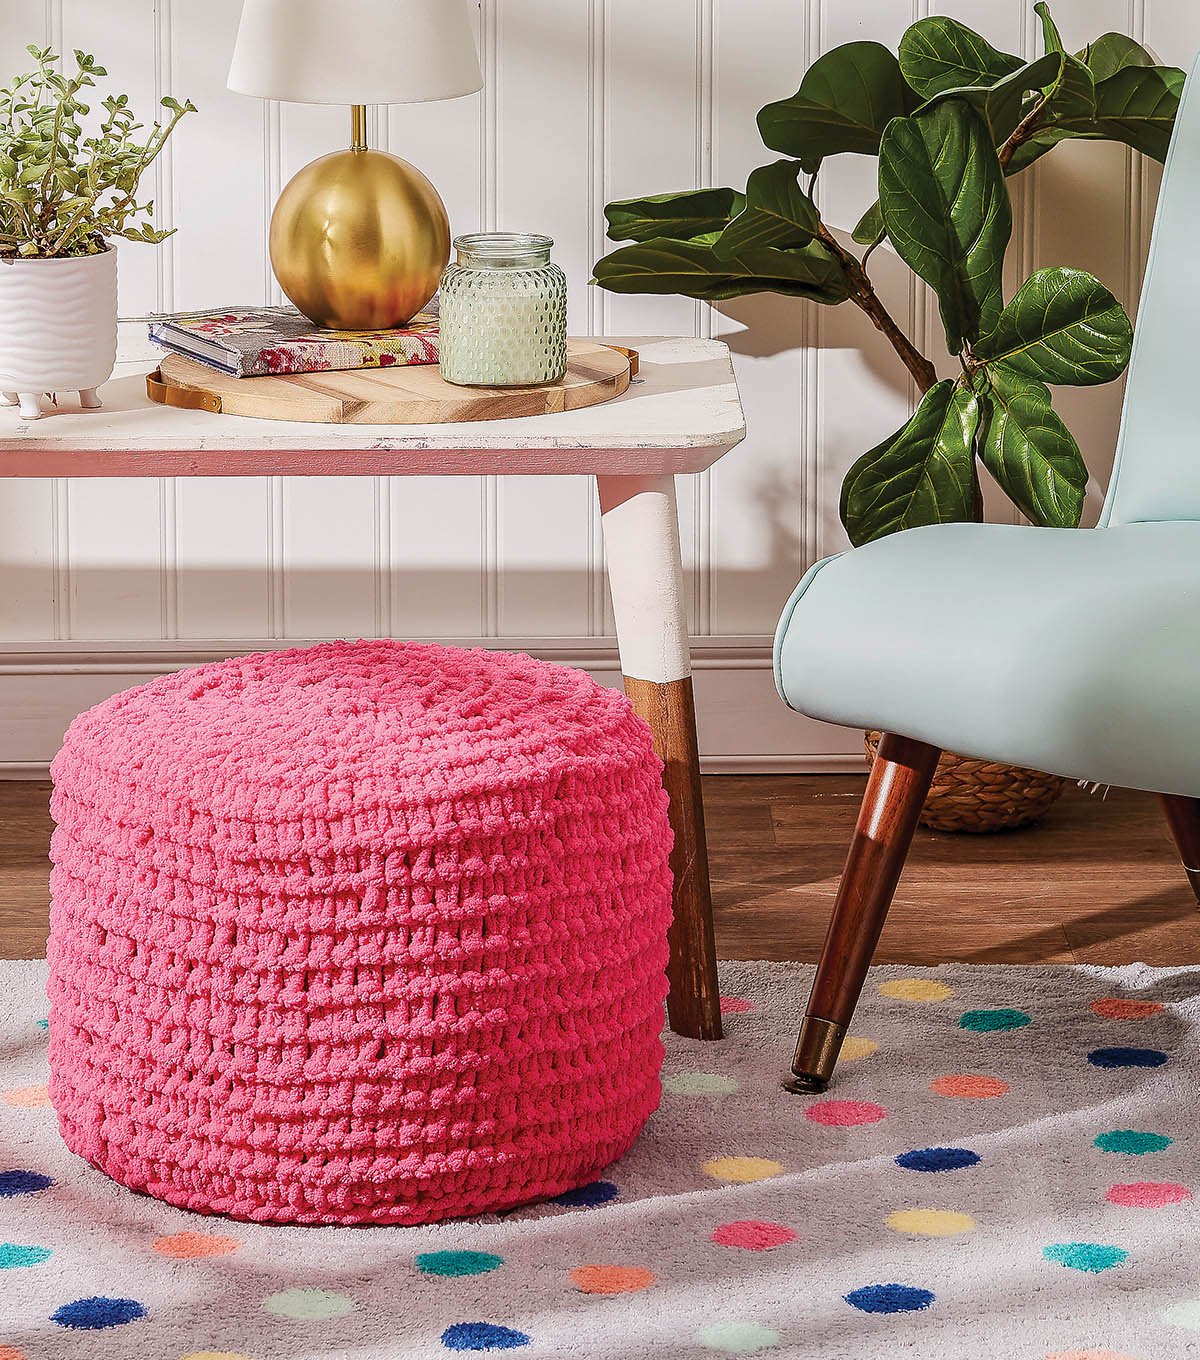 How To Make an Off the Hook Pink Ottoman Pouf | JOANN